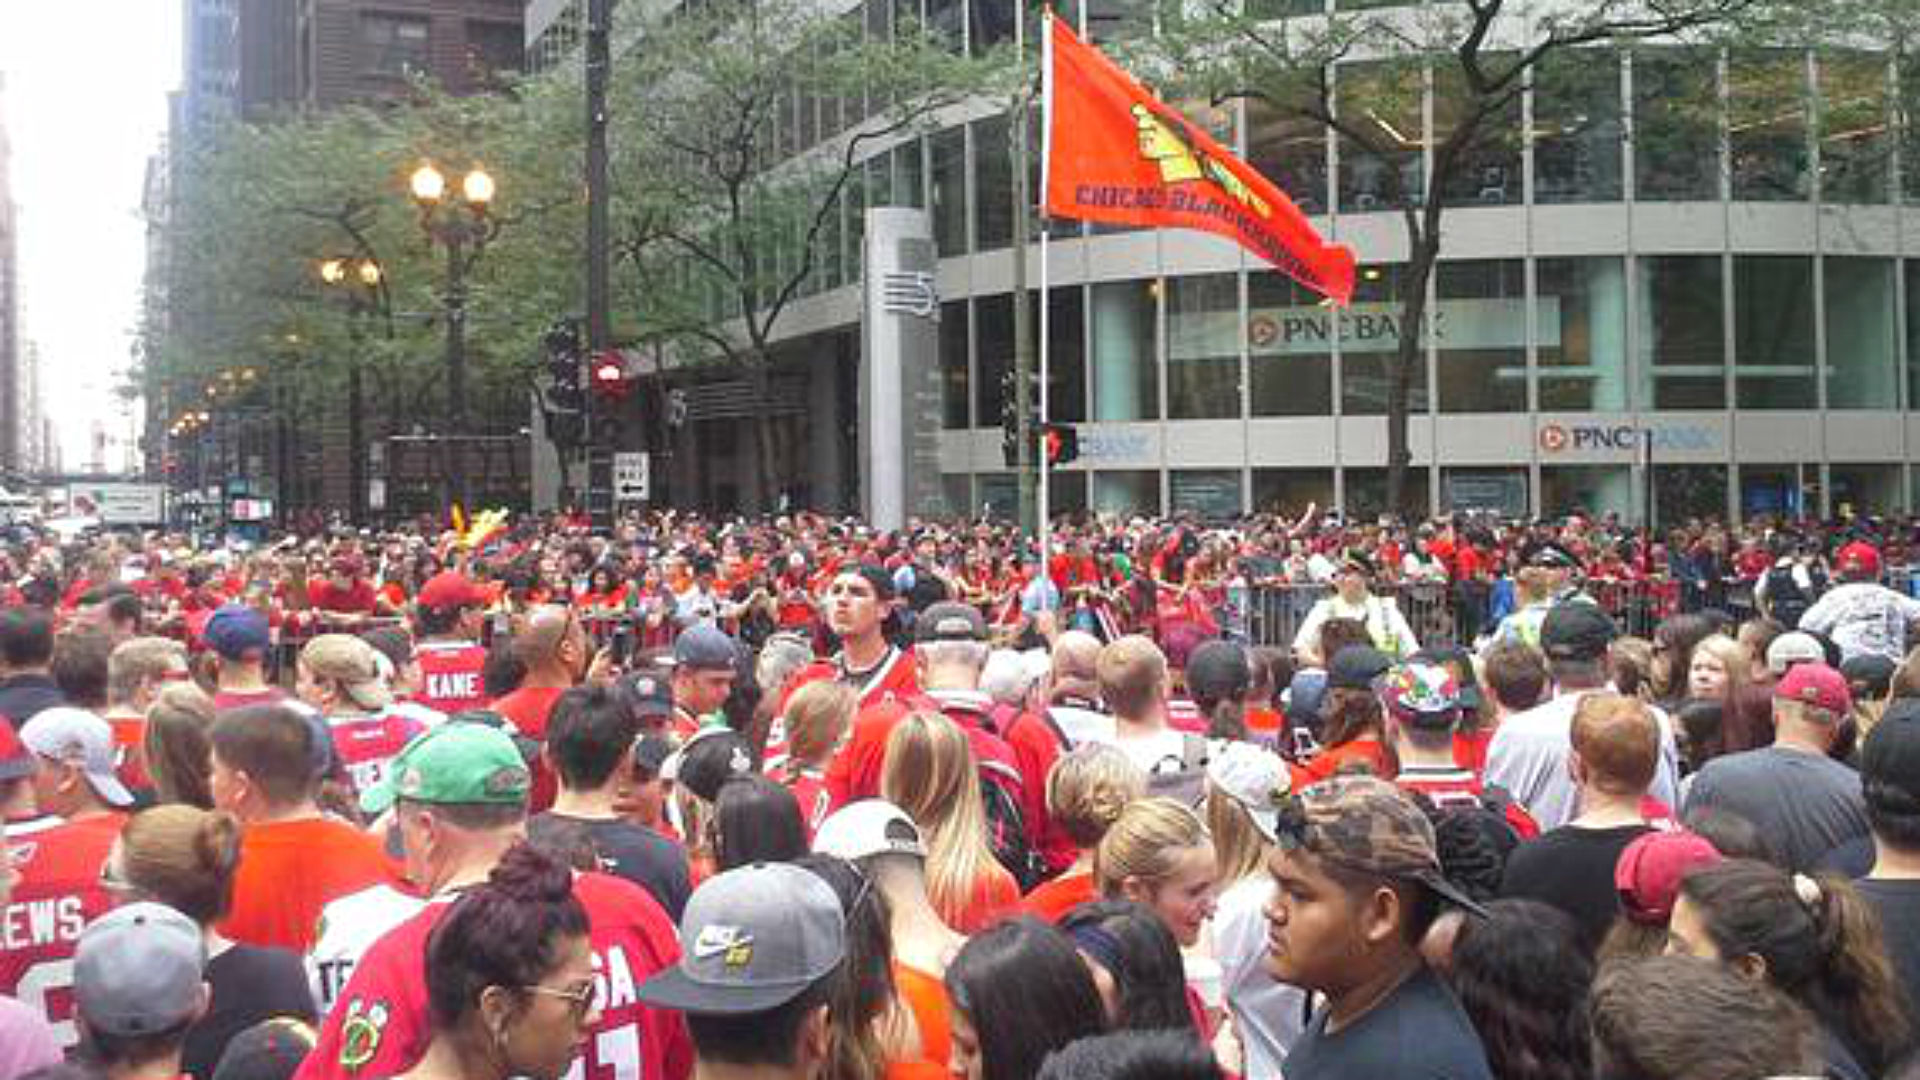 Fans at Blackhawks Stanley Cup parade